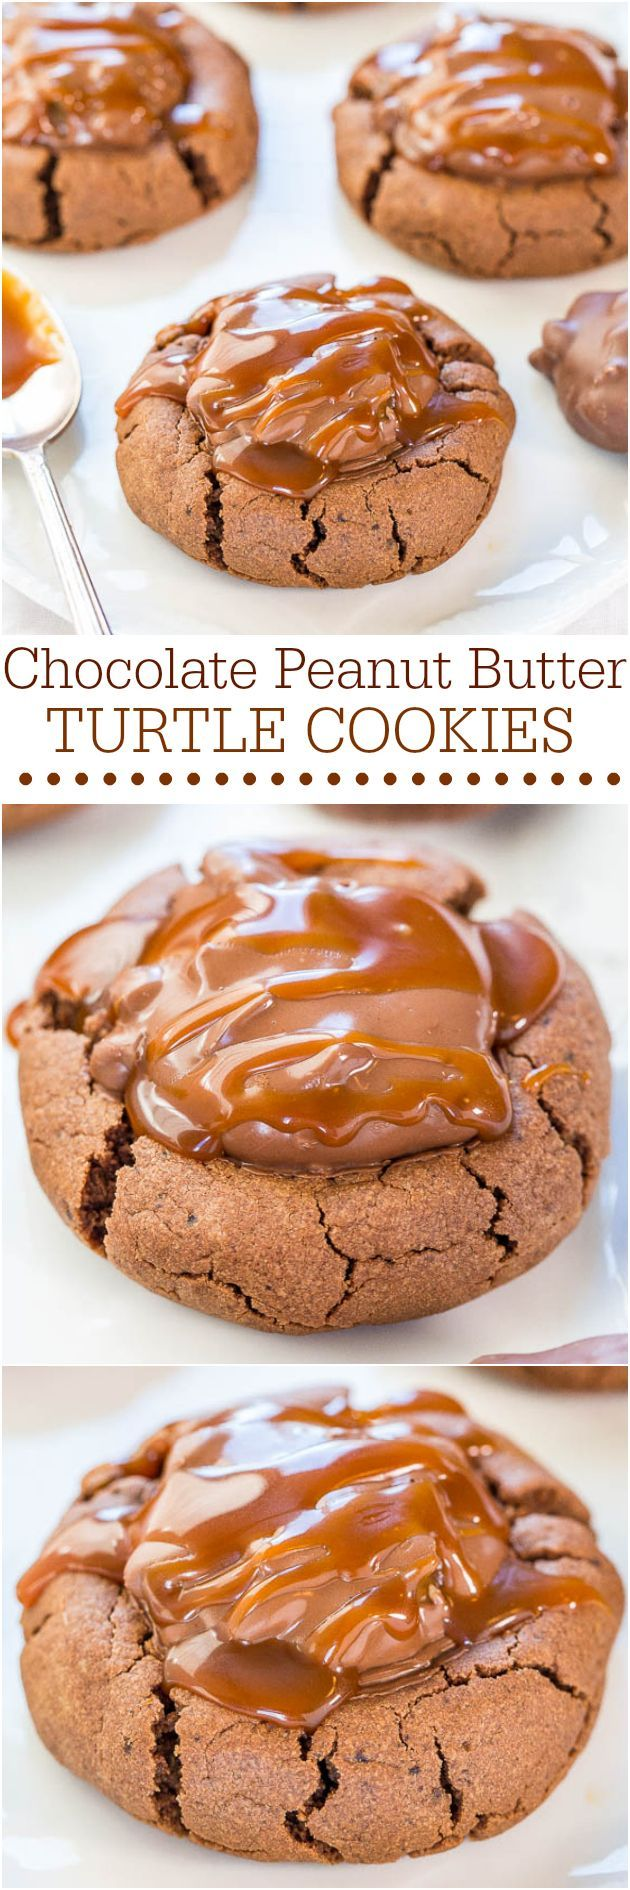 Chocolate Peanut Butter Turtle Cookies - Soft and chewy cookies with a Turtle in the middle and drizzled with salted caramel!! So.darn.good.